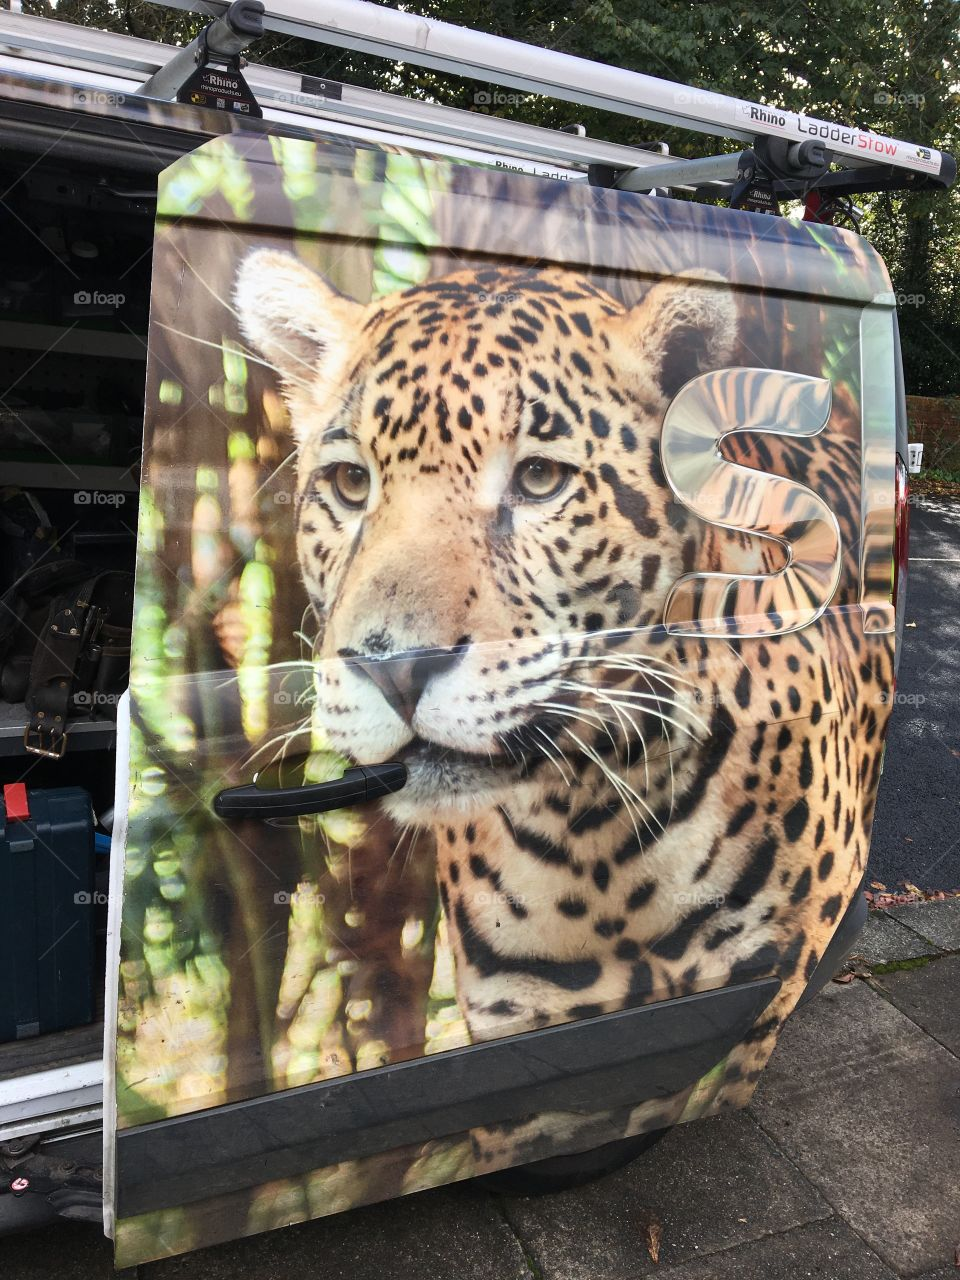 Beautiful eye catching SKY Van ... Leopard graffix makes it stand out